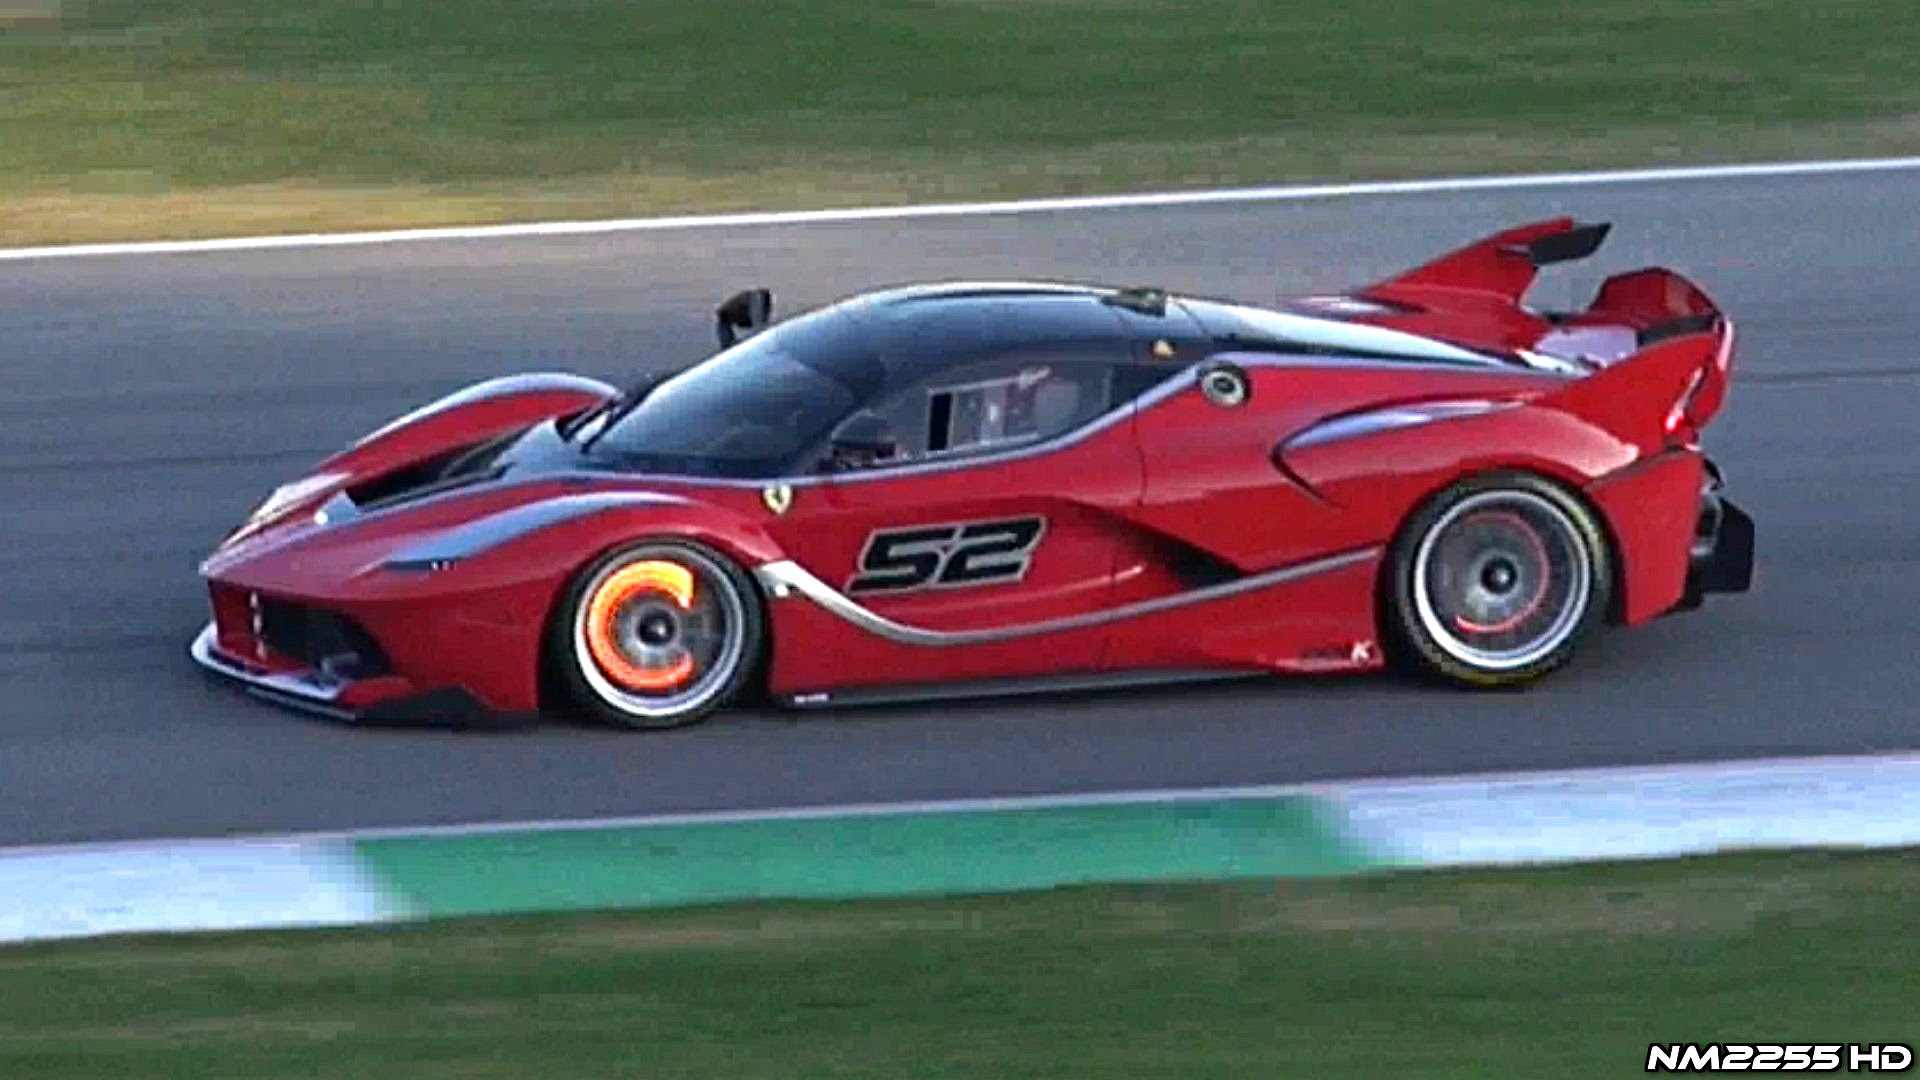 Epic Ferrari FXX K Glowing Brakes & Downshifts